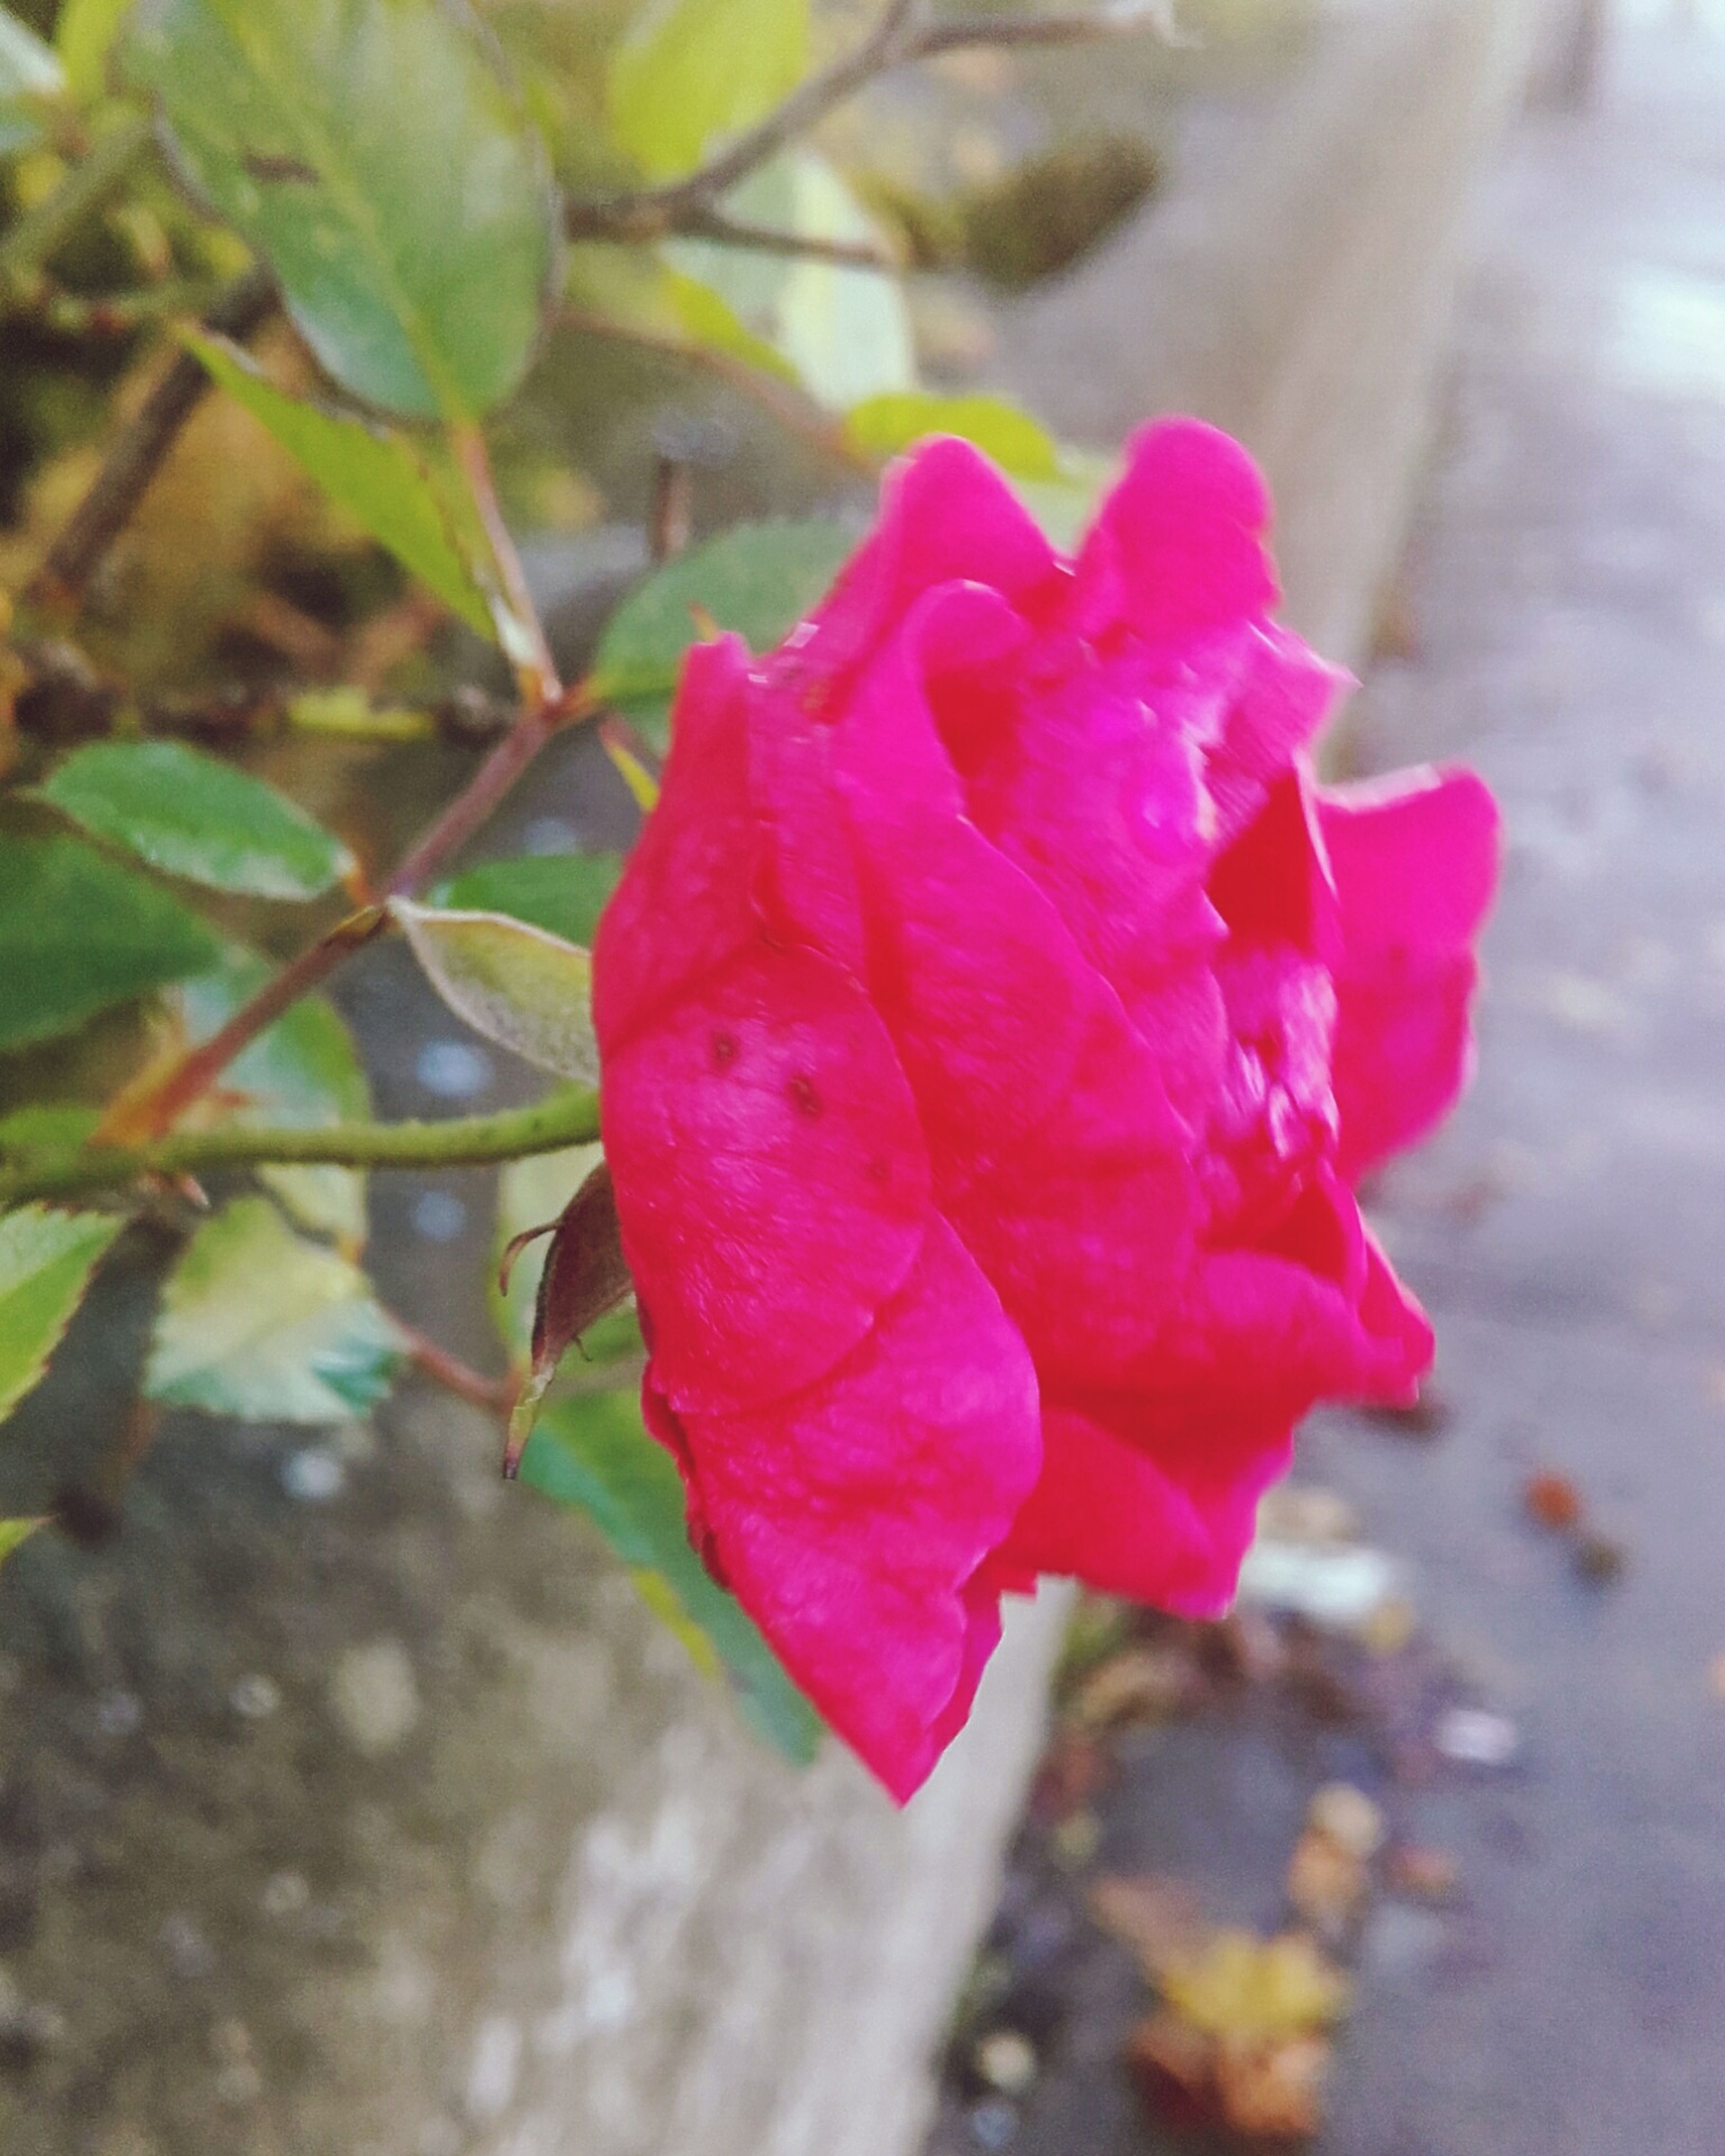 flower, rose - flower, pink color, freshness, petal, focus on foreground, close-up, fragility, flower head, beauty in nature, red, growth, nature, leaf, single flower, plant, day, selective focus, pink, outdoors